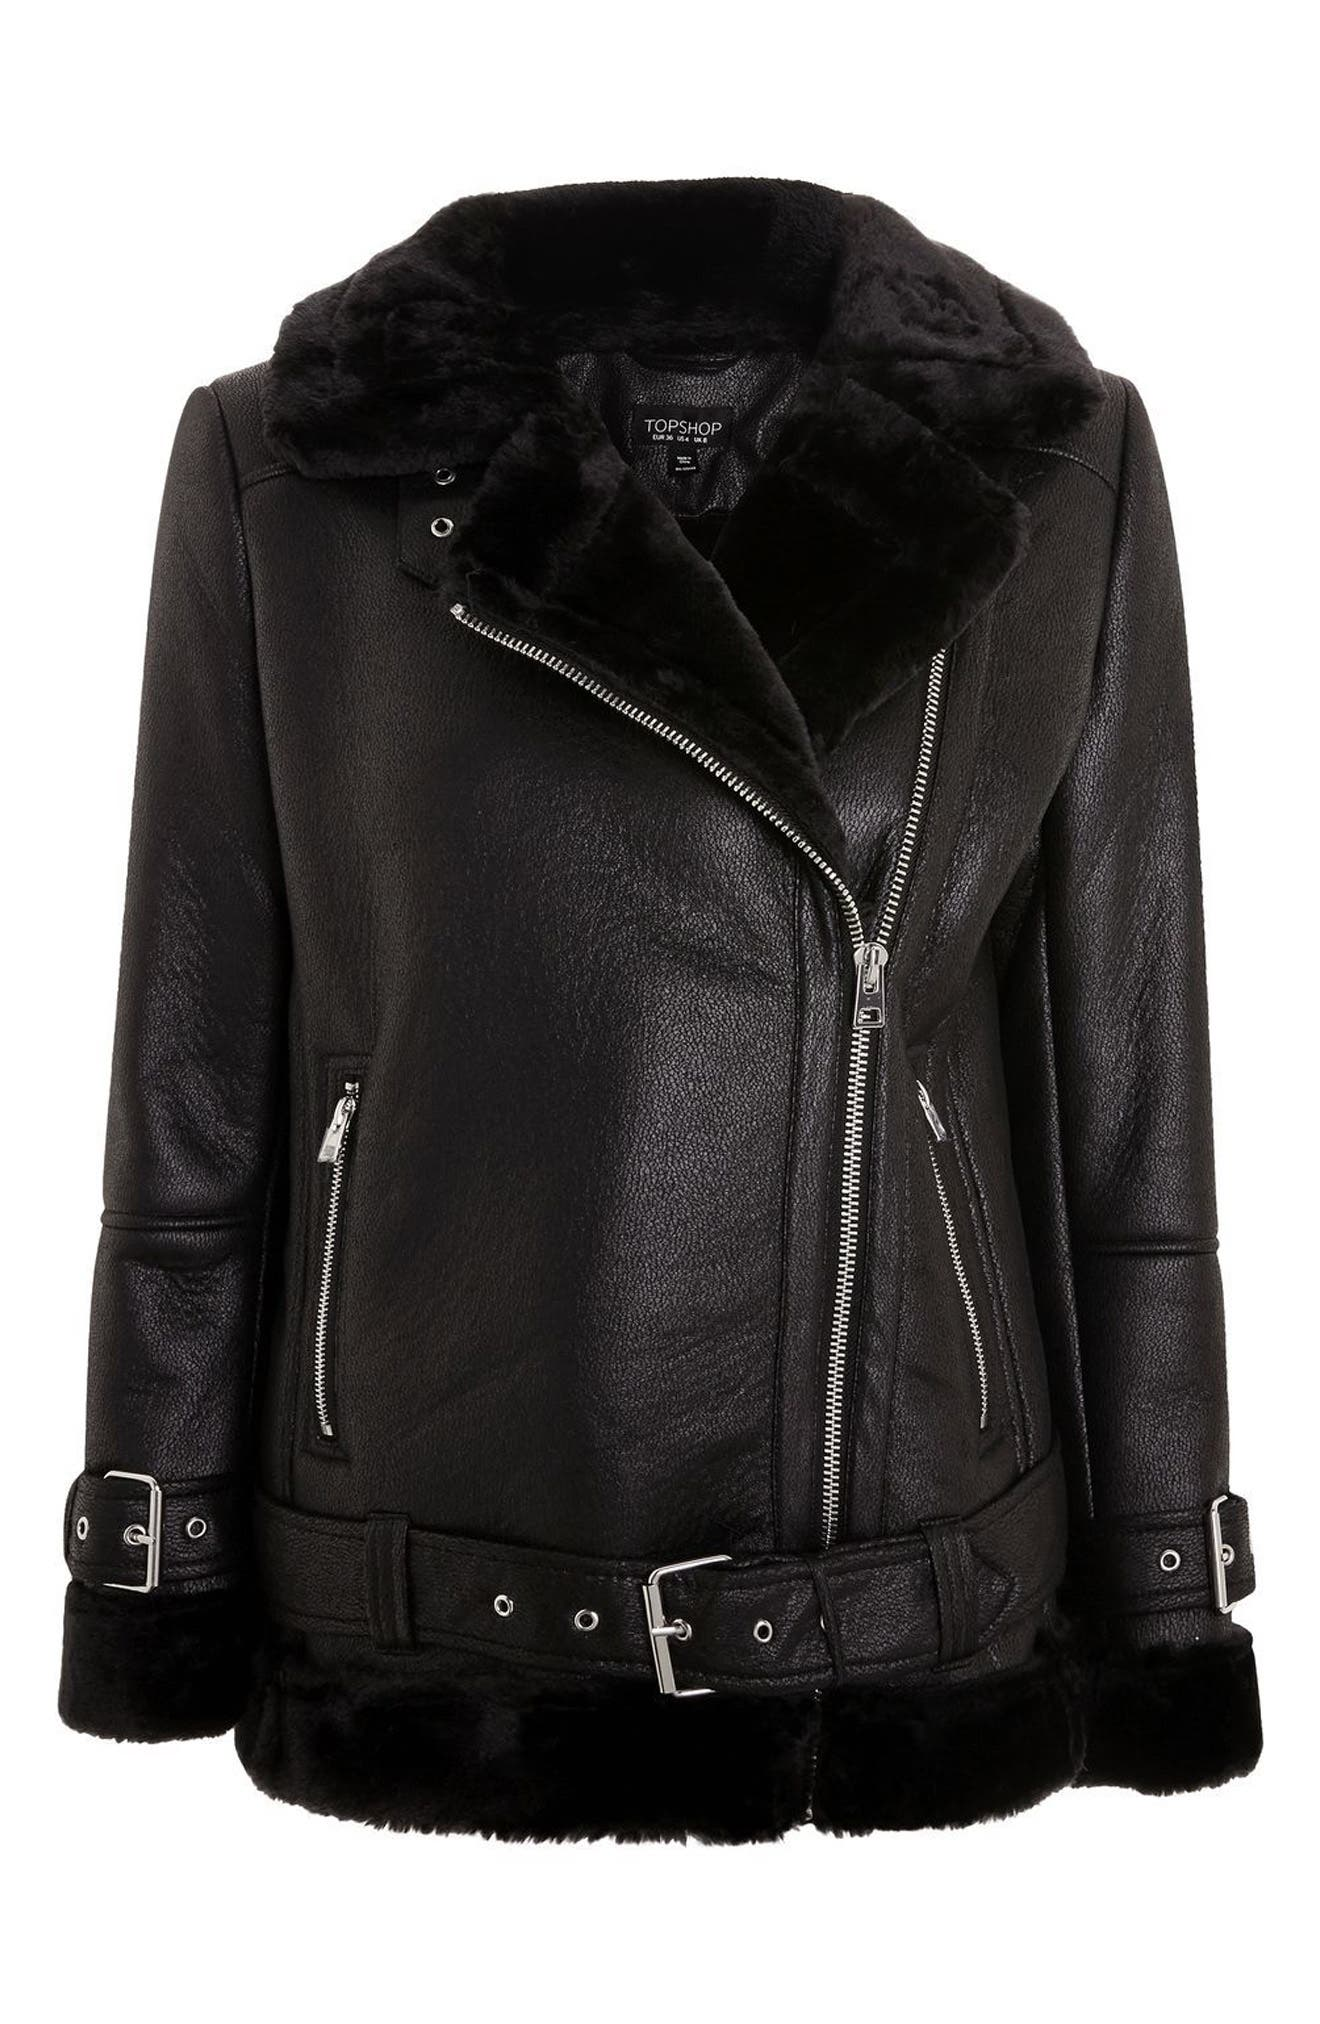 TOPSHOP,                             Faux Shearling Biker Jacket,                             Alternate thumbnail 4, color,                             001